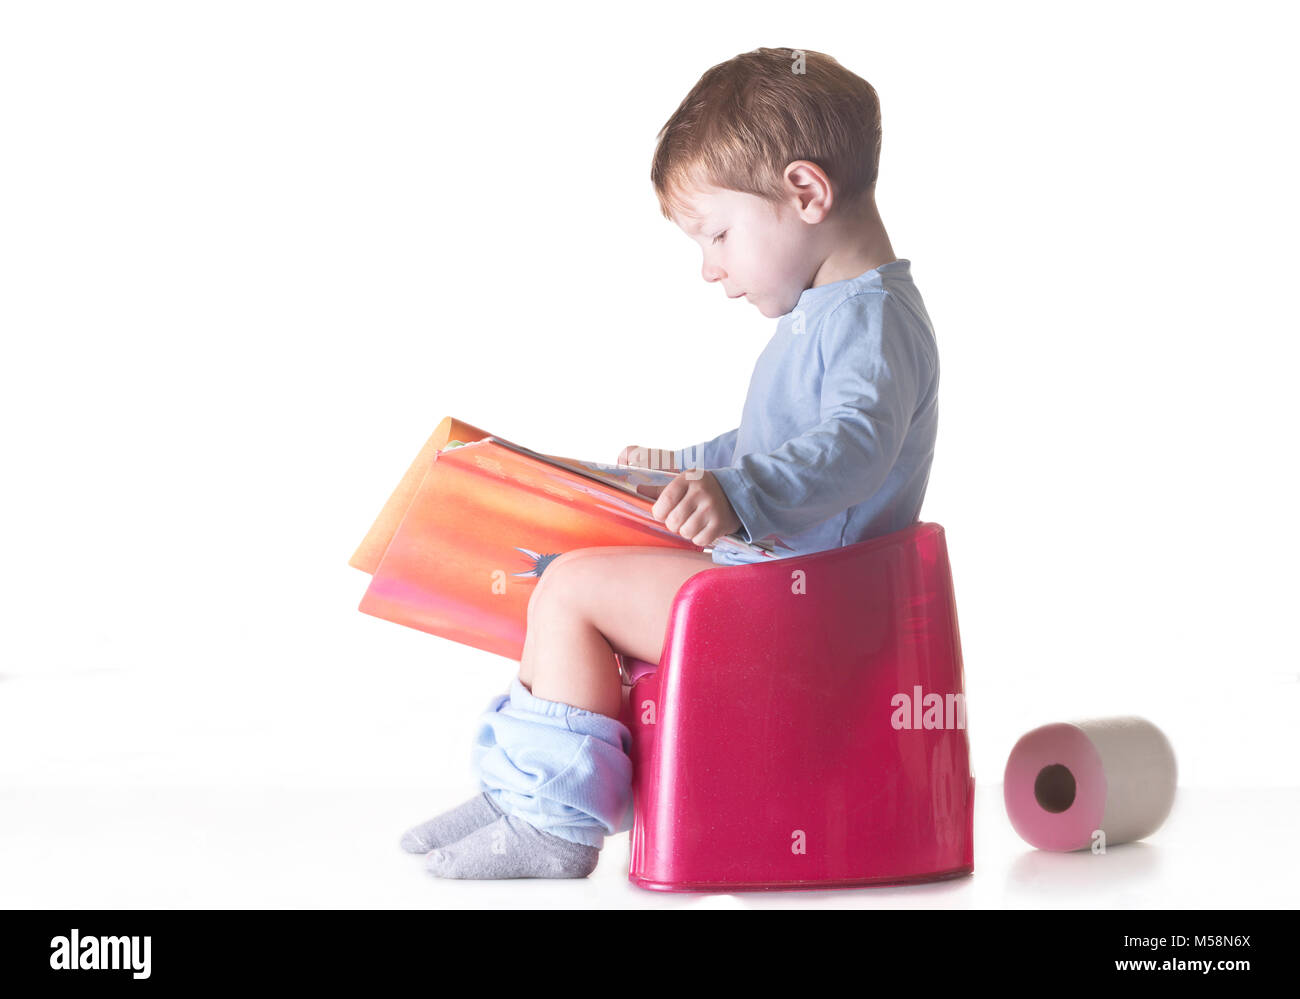 Toddler boy sitting on chamber pot reading story book. Potty training concept - Stock Image